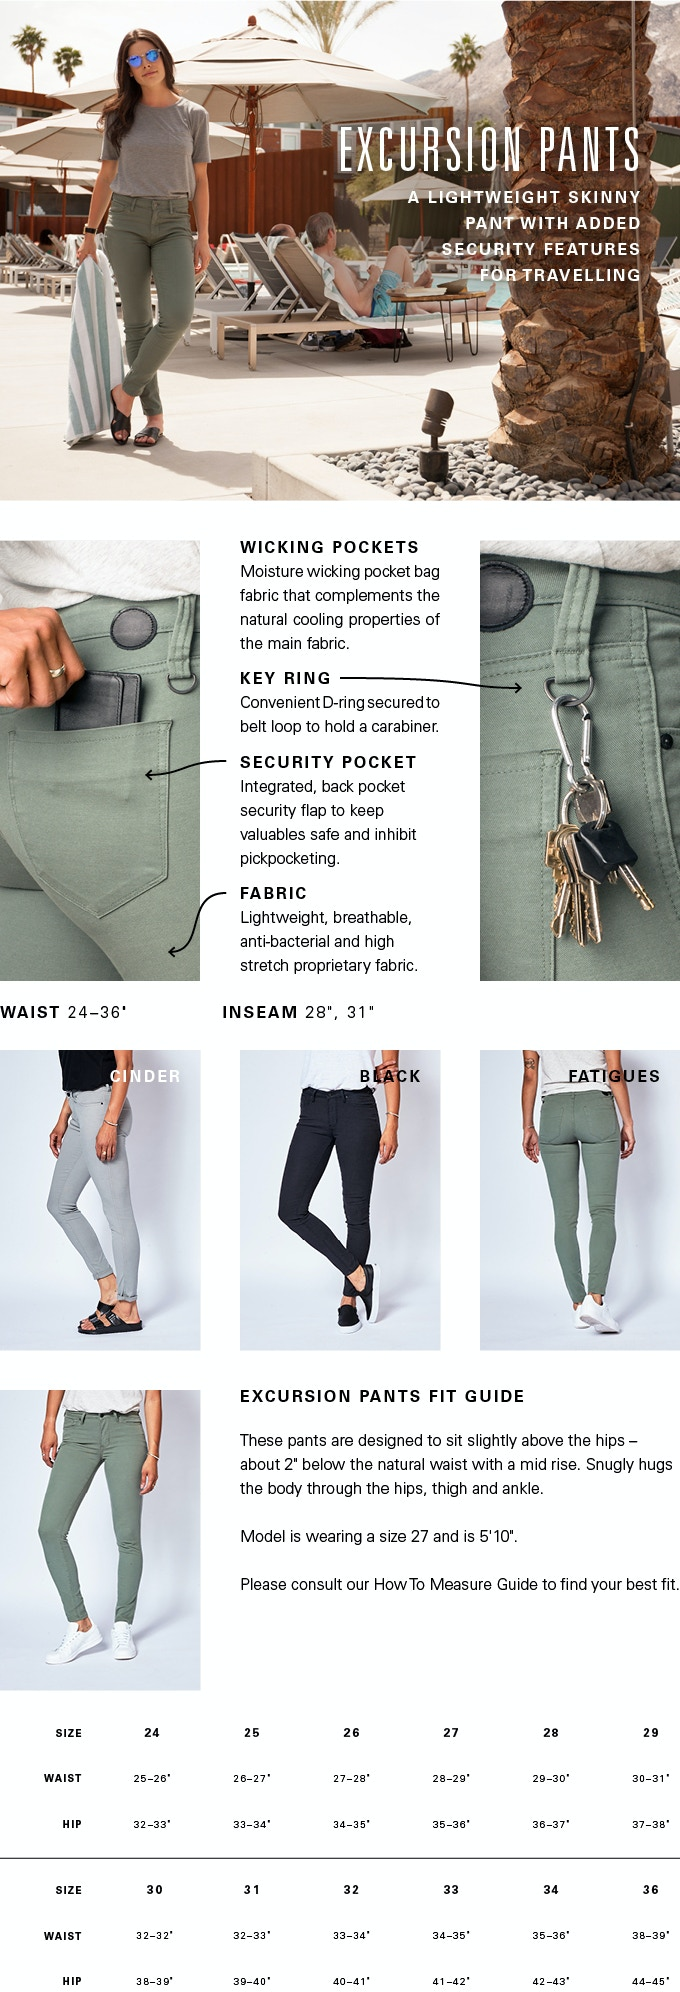 f2554659 The Live Lite pants keep you cool in hot weather and can be worn from  business meetings to wilderness adventures, but there may be days where you  can get ...